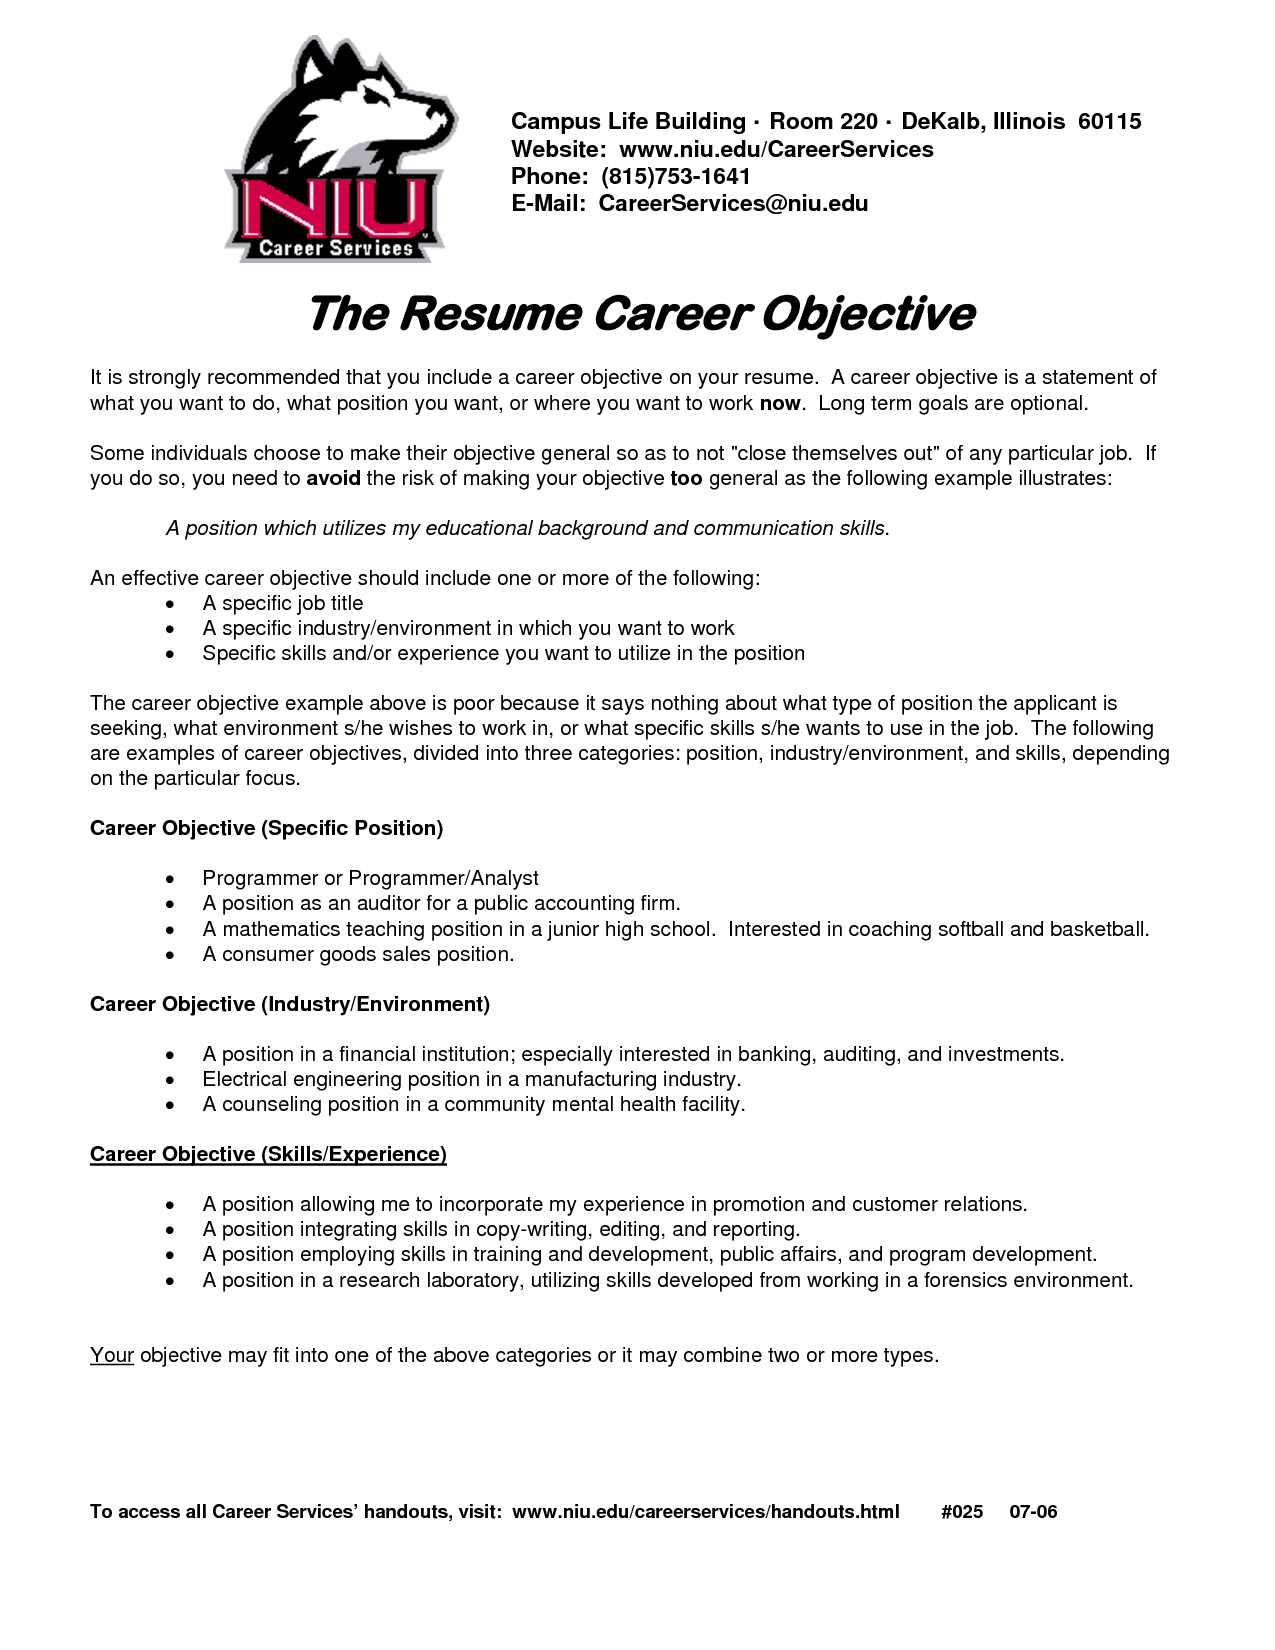 Career Objective Resume Examples Free Download